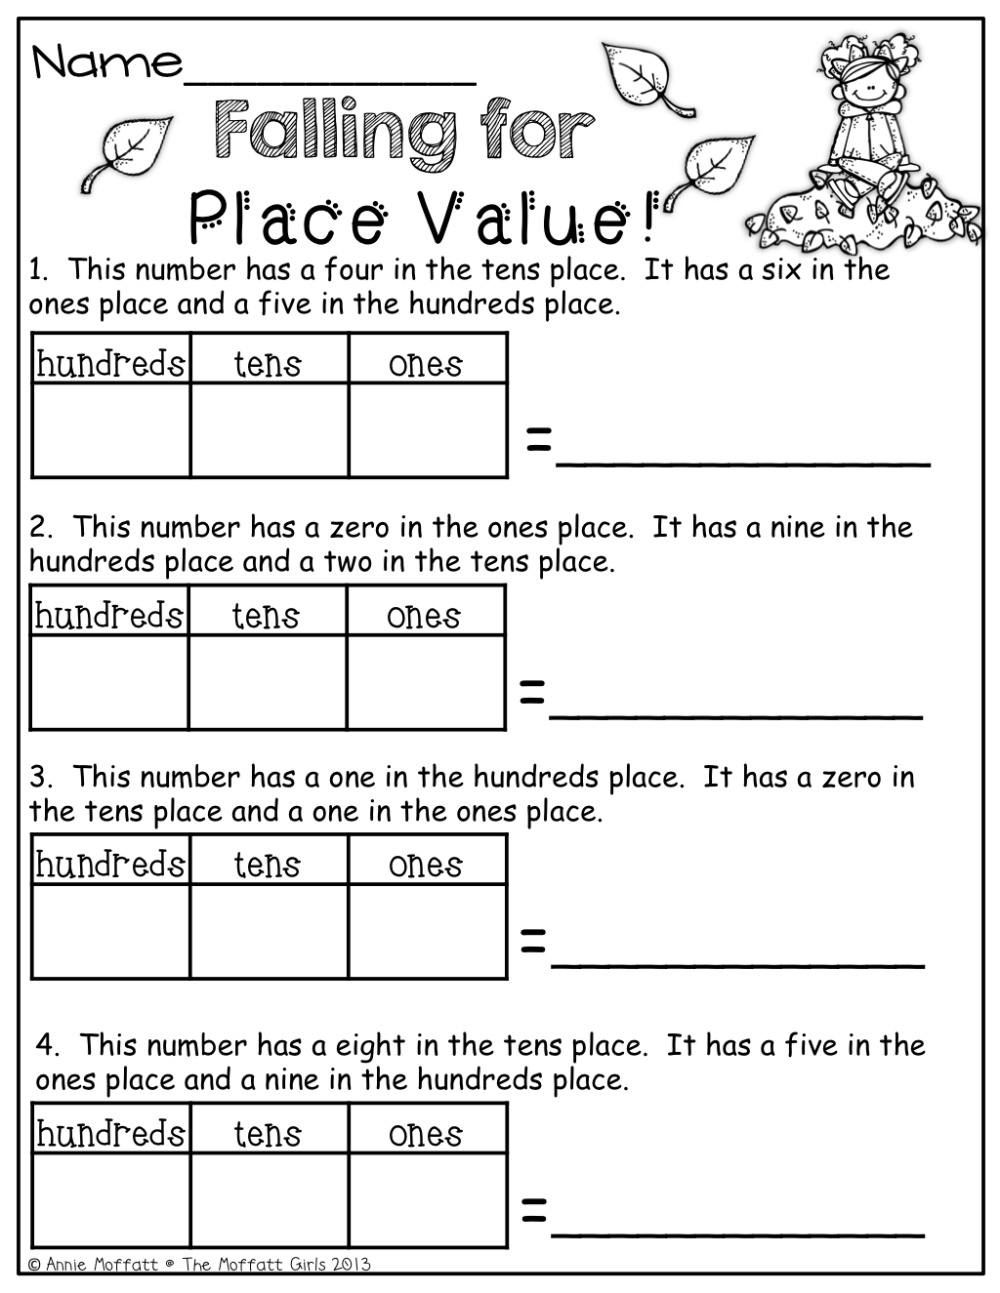 medium resolution of Place Value Worksheet 6th Grade   Printable Worksheets and Activities for  Teachers